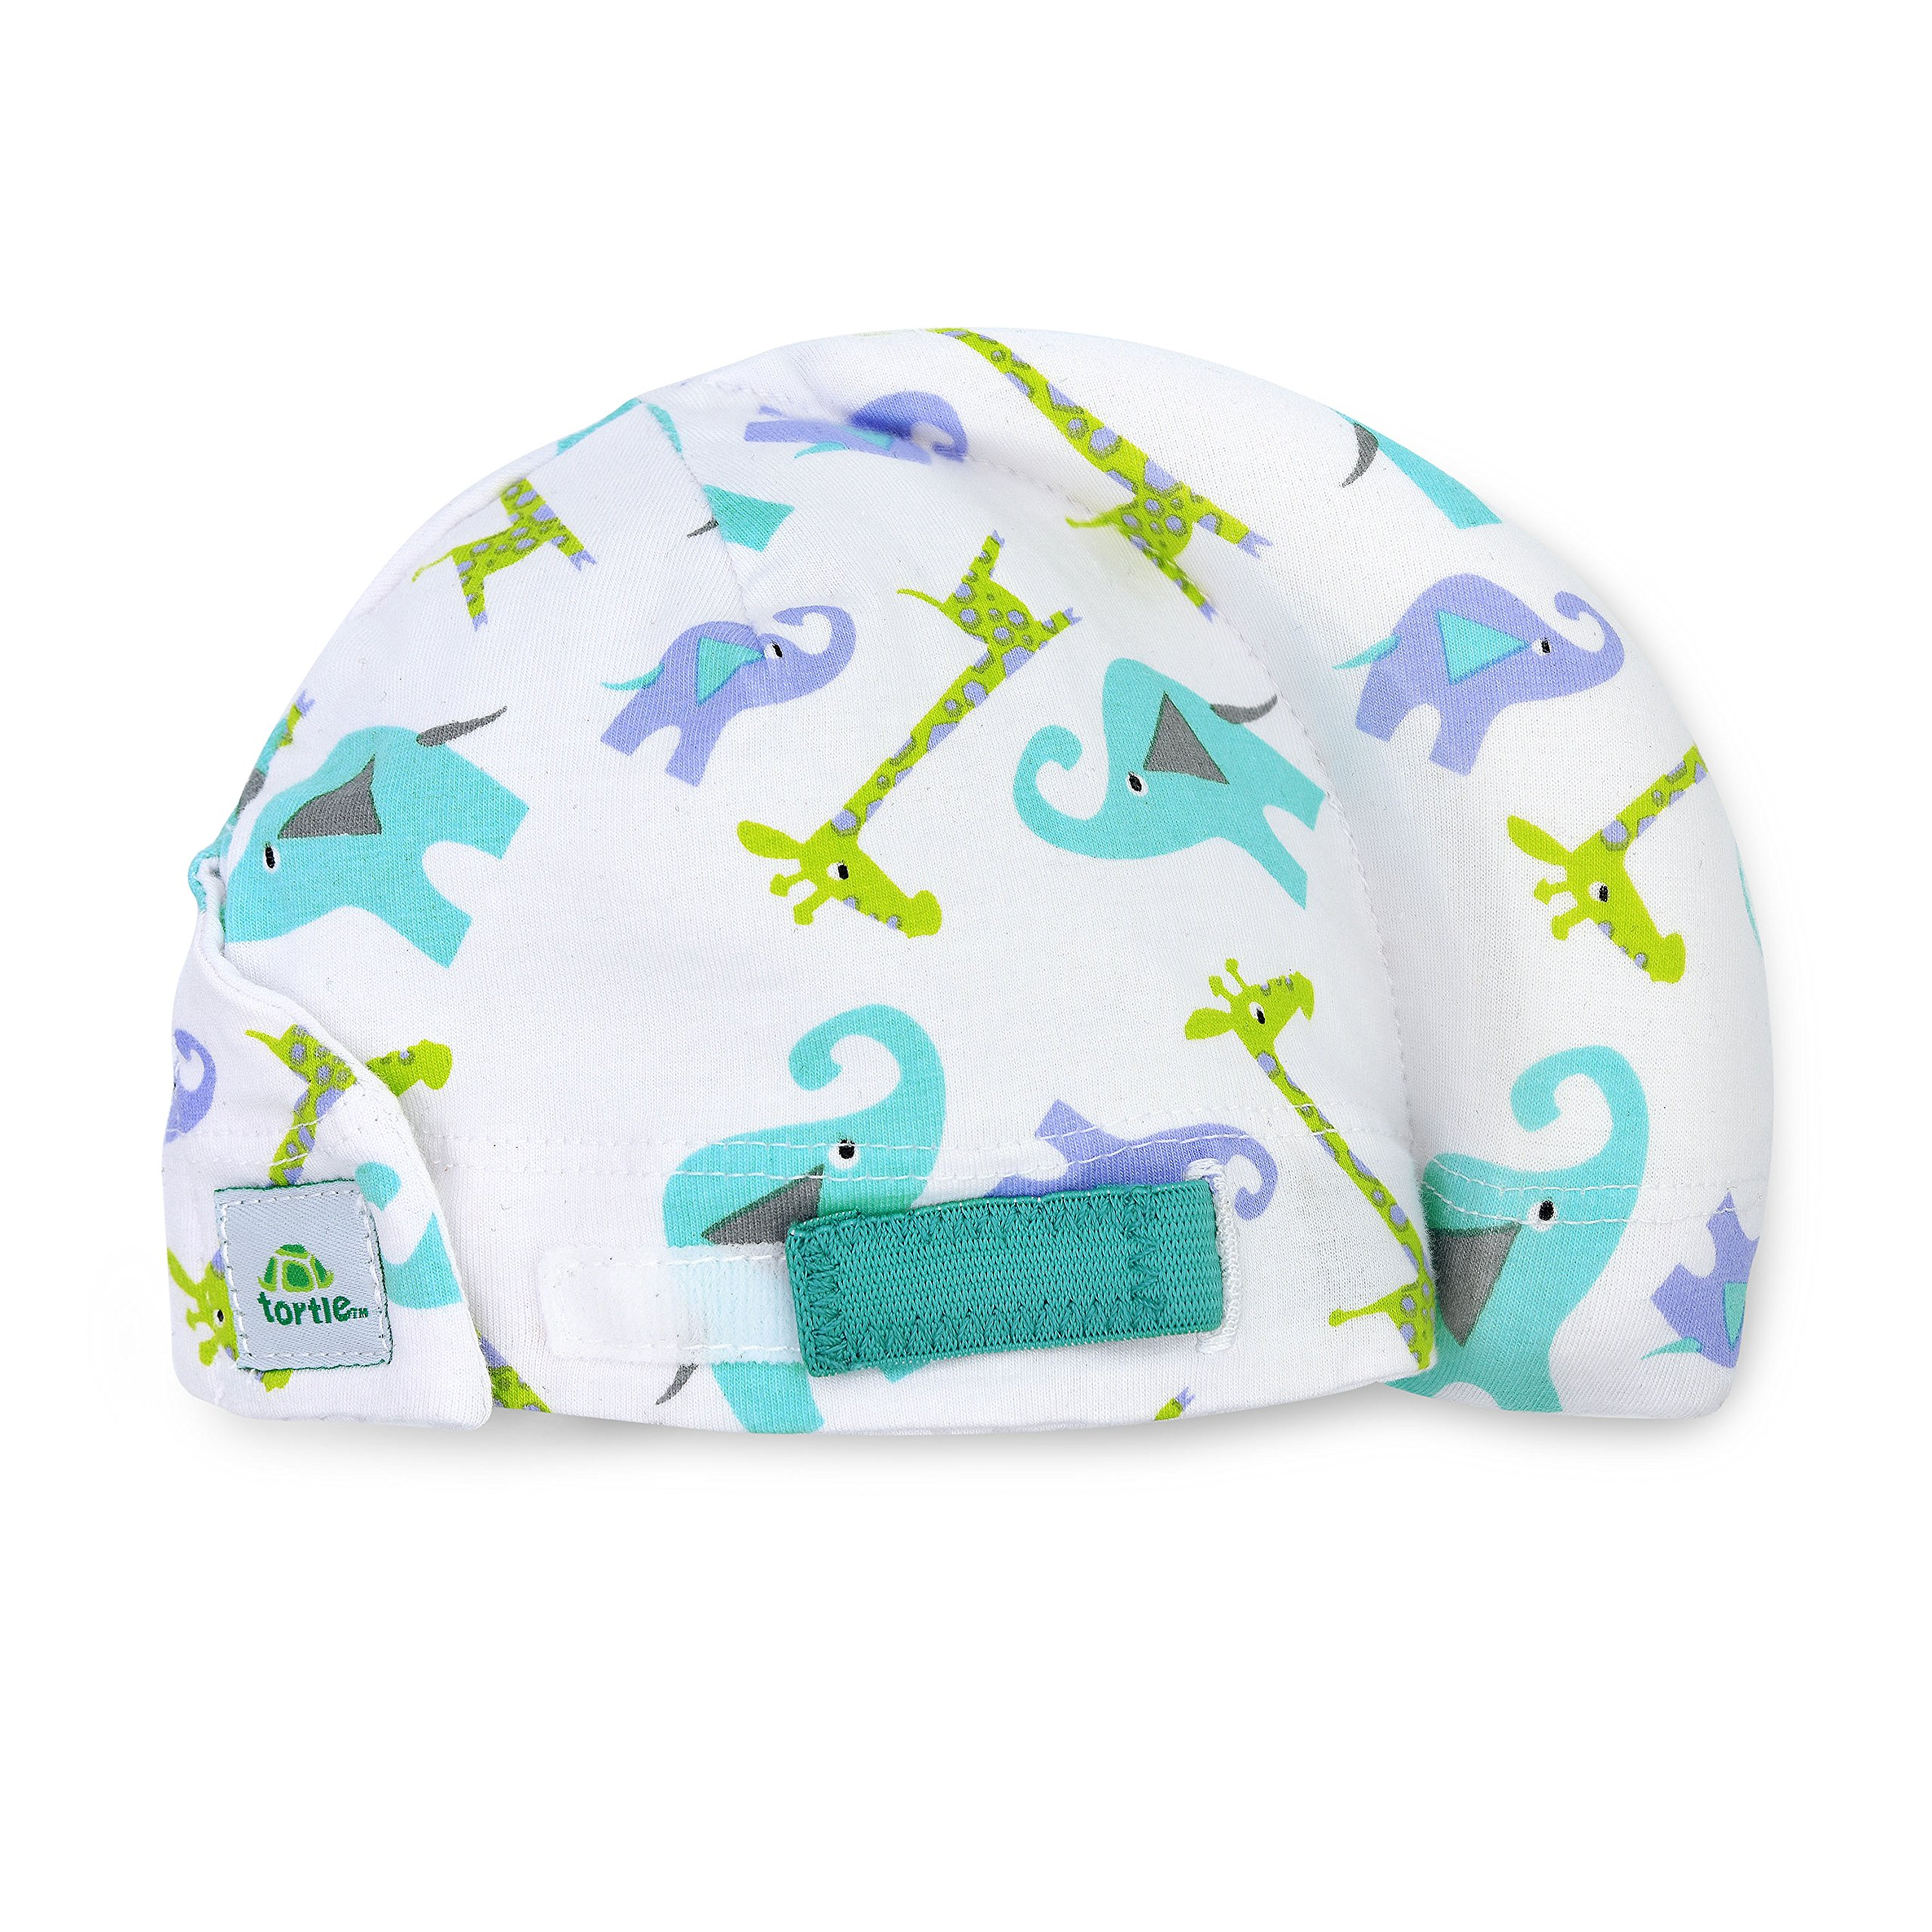 Tortle Lucky Elephant Baby Beanie, Prevents Flat Head Syndrome, Provides Neck Support, Prevents Torticollis, Newborn or Infant